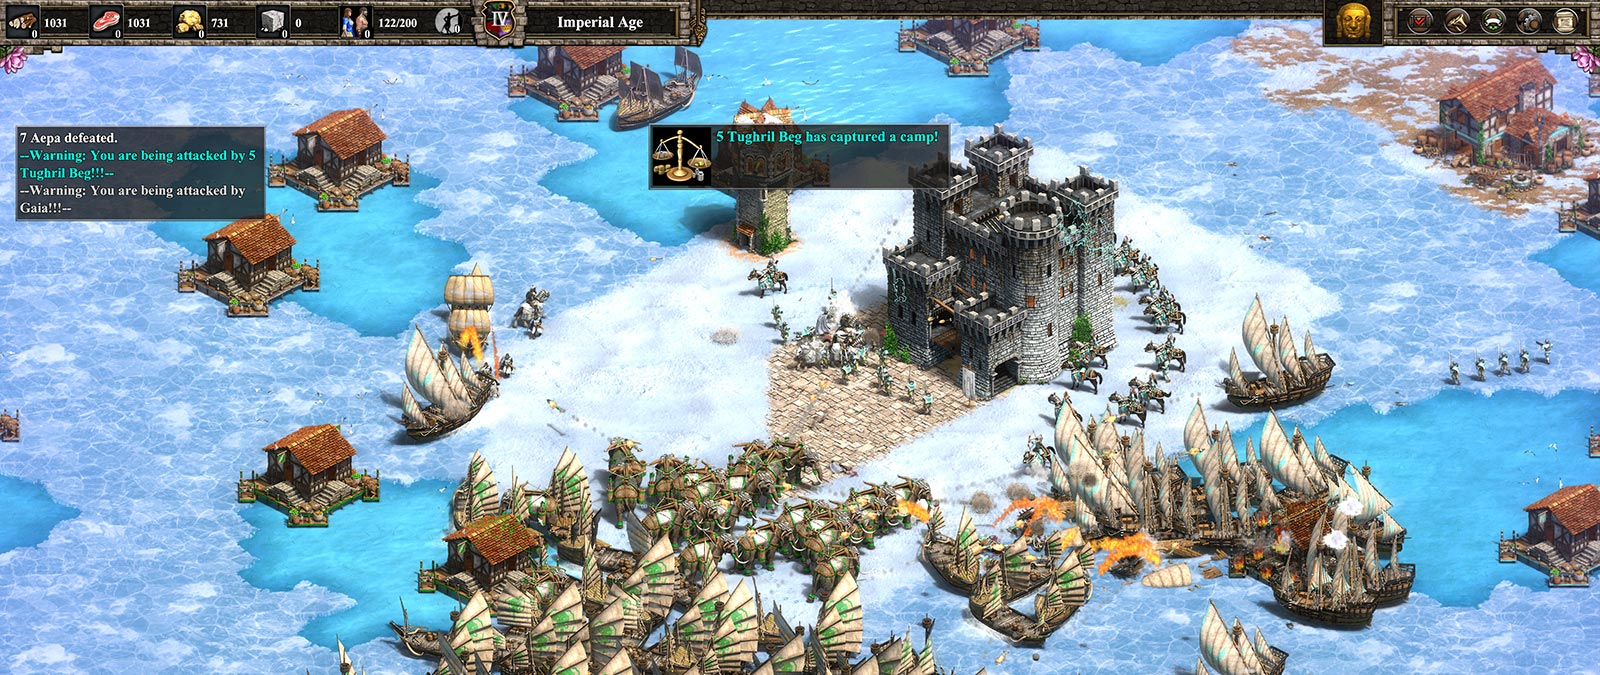 Screenshot des Gameplays aus Age of Empires II: Definitive Edition. Eine Kampfszene in Schnee und Eis.